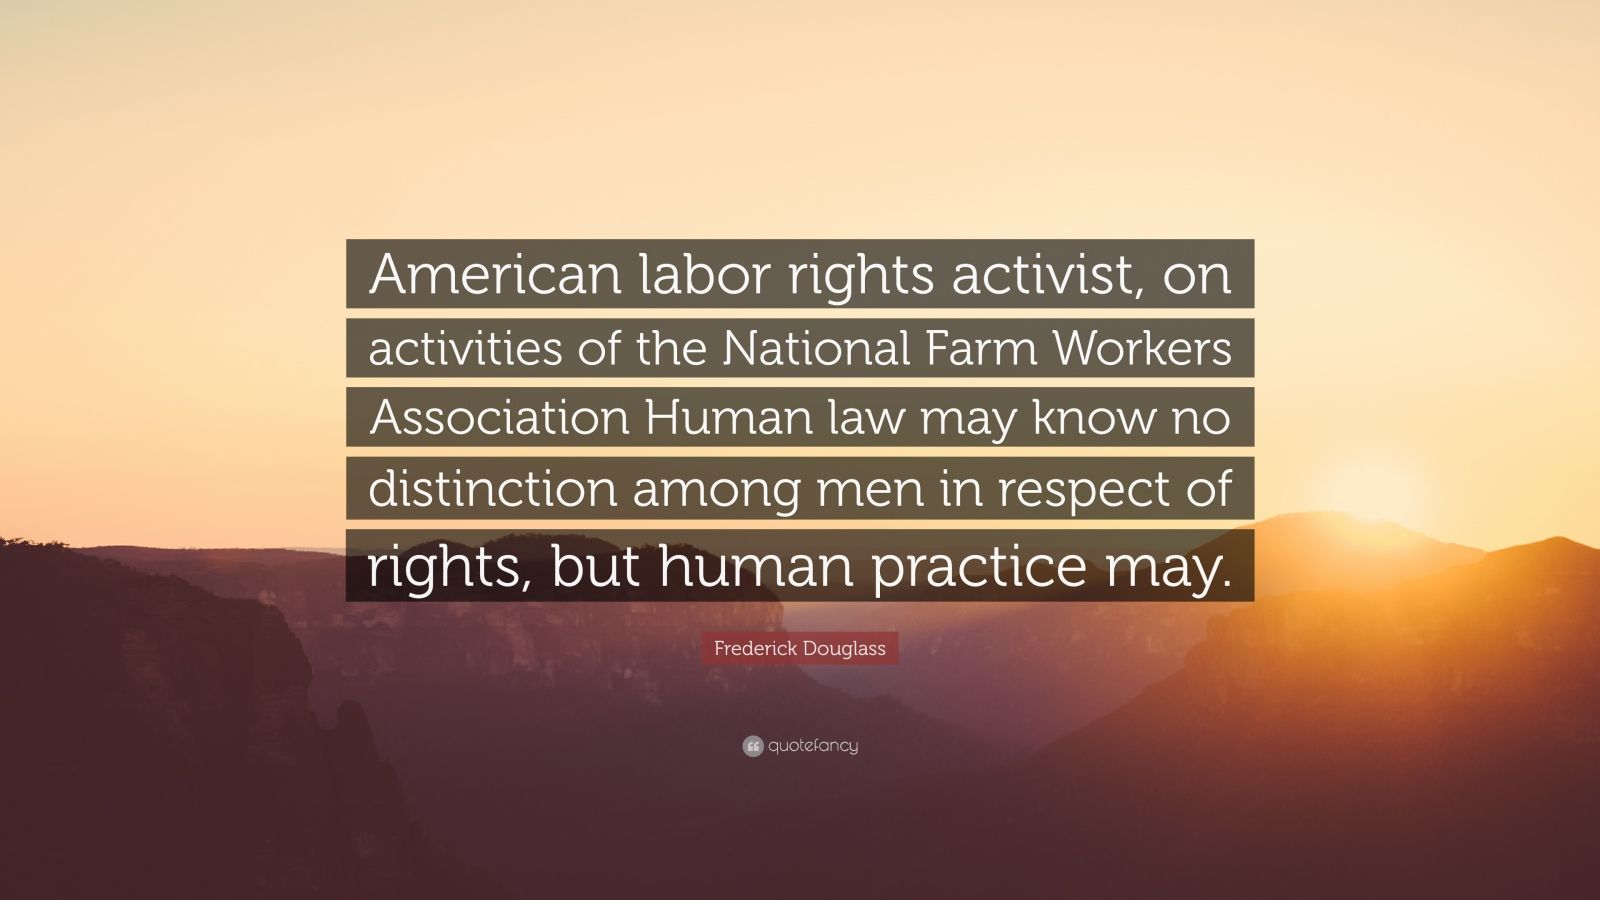 """Frederick Douglass Quote: """"American labor rights activist, on activities of the National Farm Workers Association Human law may know no distinction among men in respect of rights, but human practice may."""""""